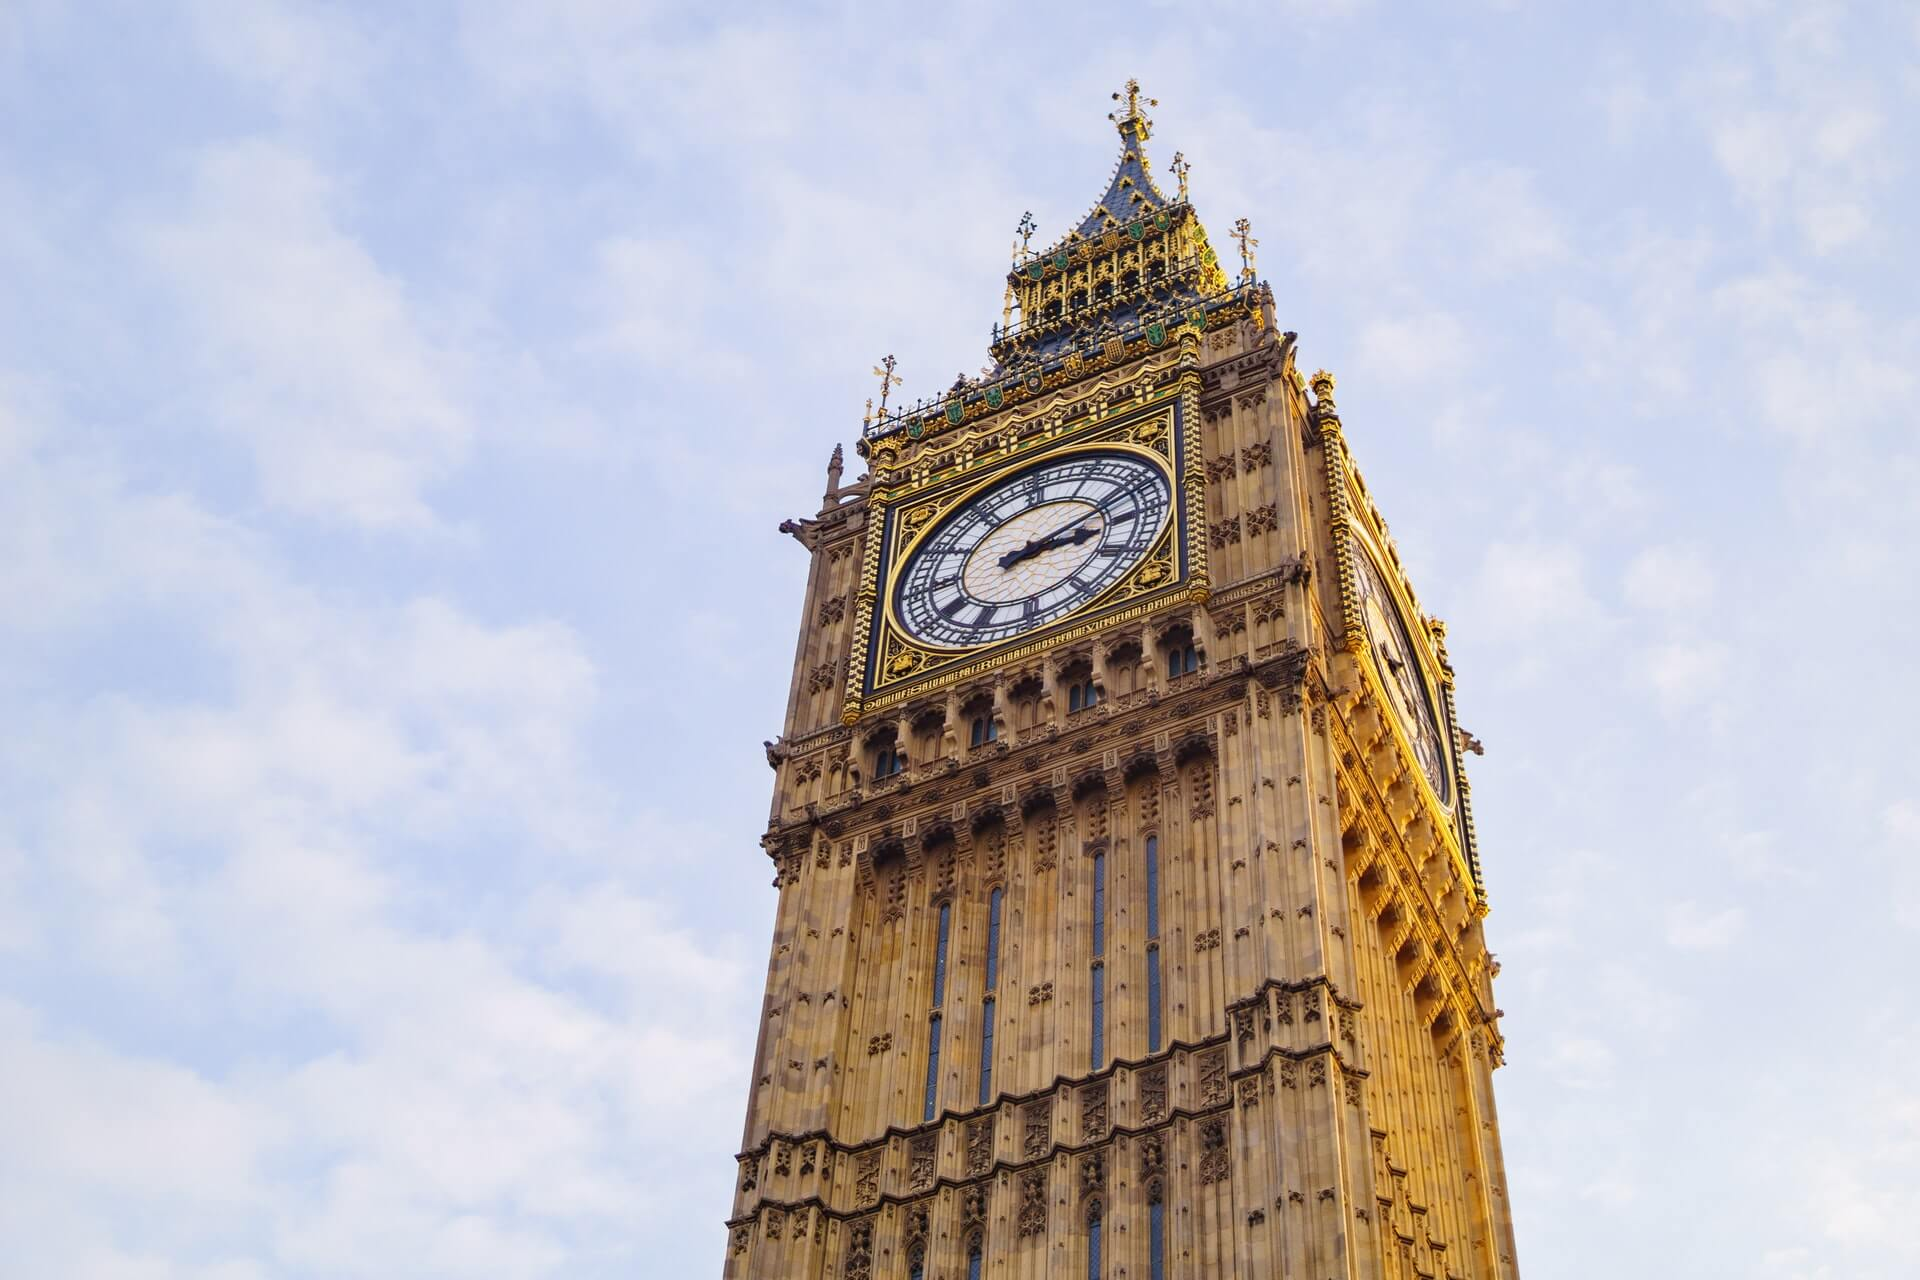 Elizabeth Tower with the clock at 15:12